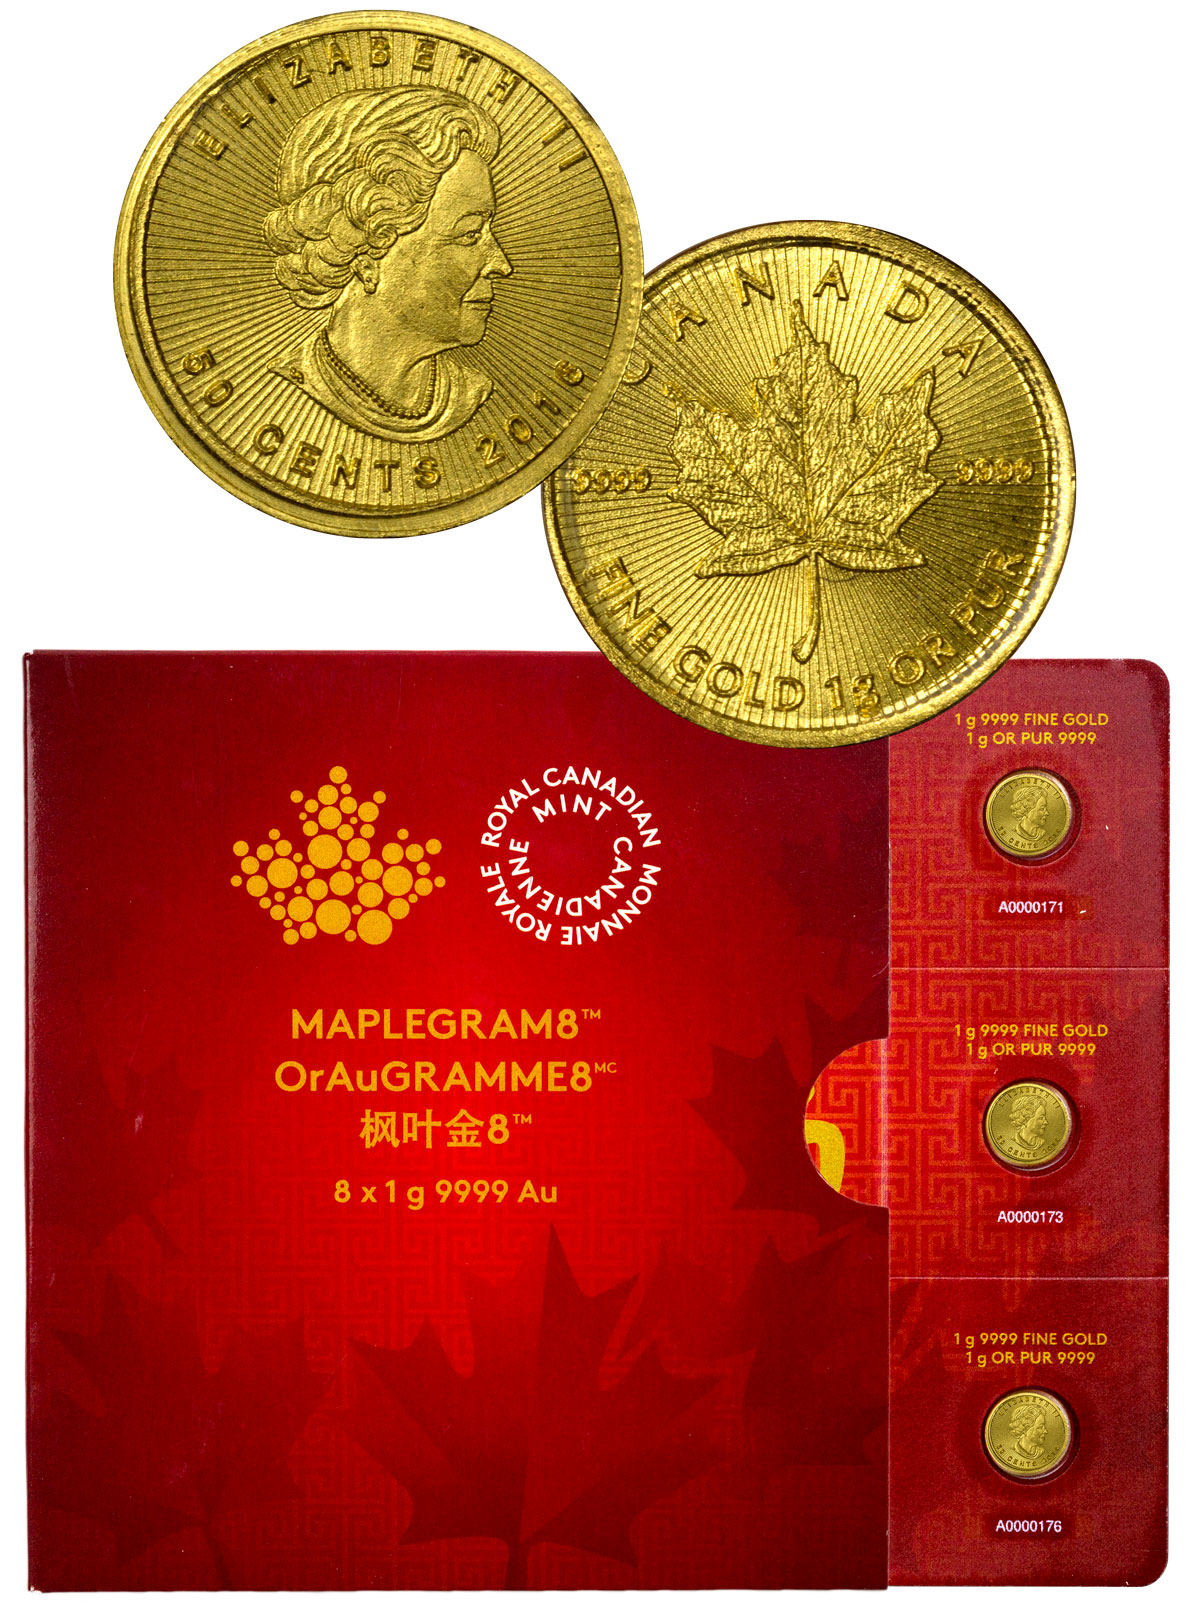 2016 Canada 50c 1g Gold Maplegram8 - Sheet of 8 Coins - GEM BU (Sealed with Cert)